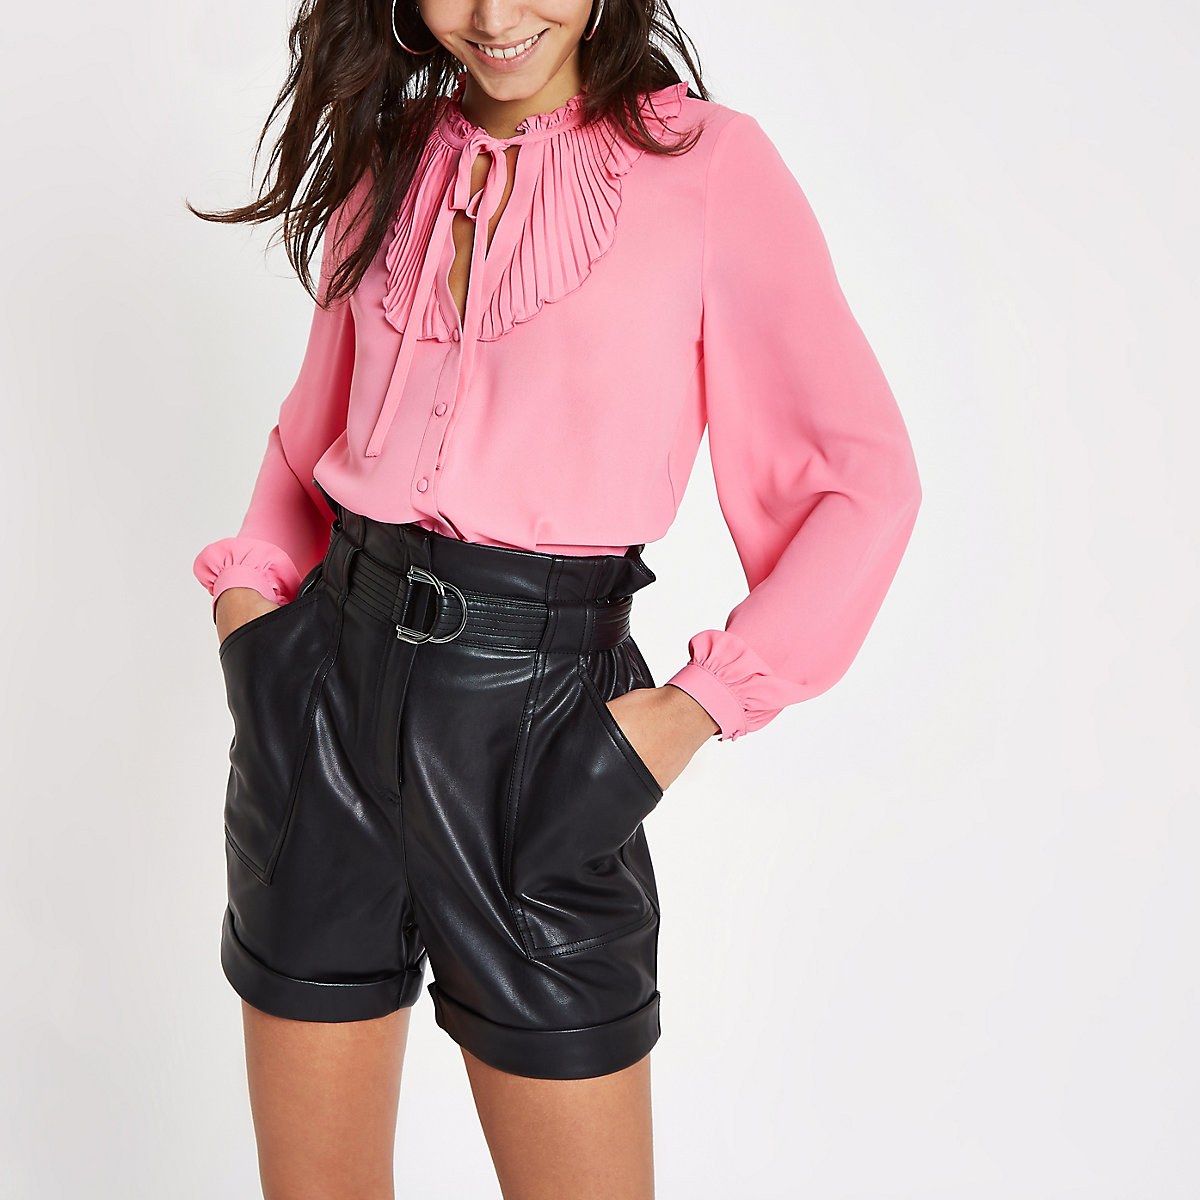 Bright pink frill blouse